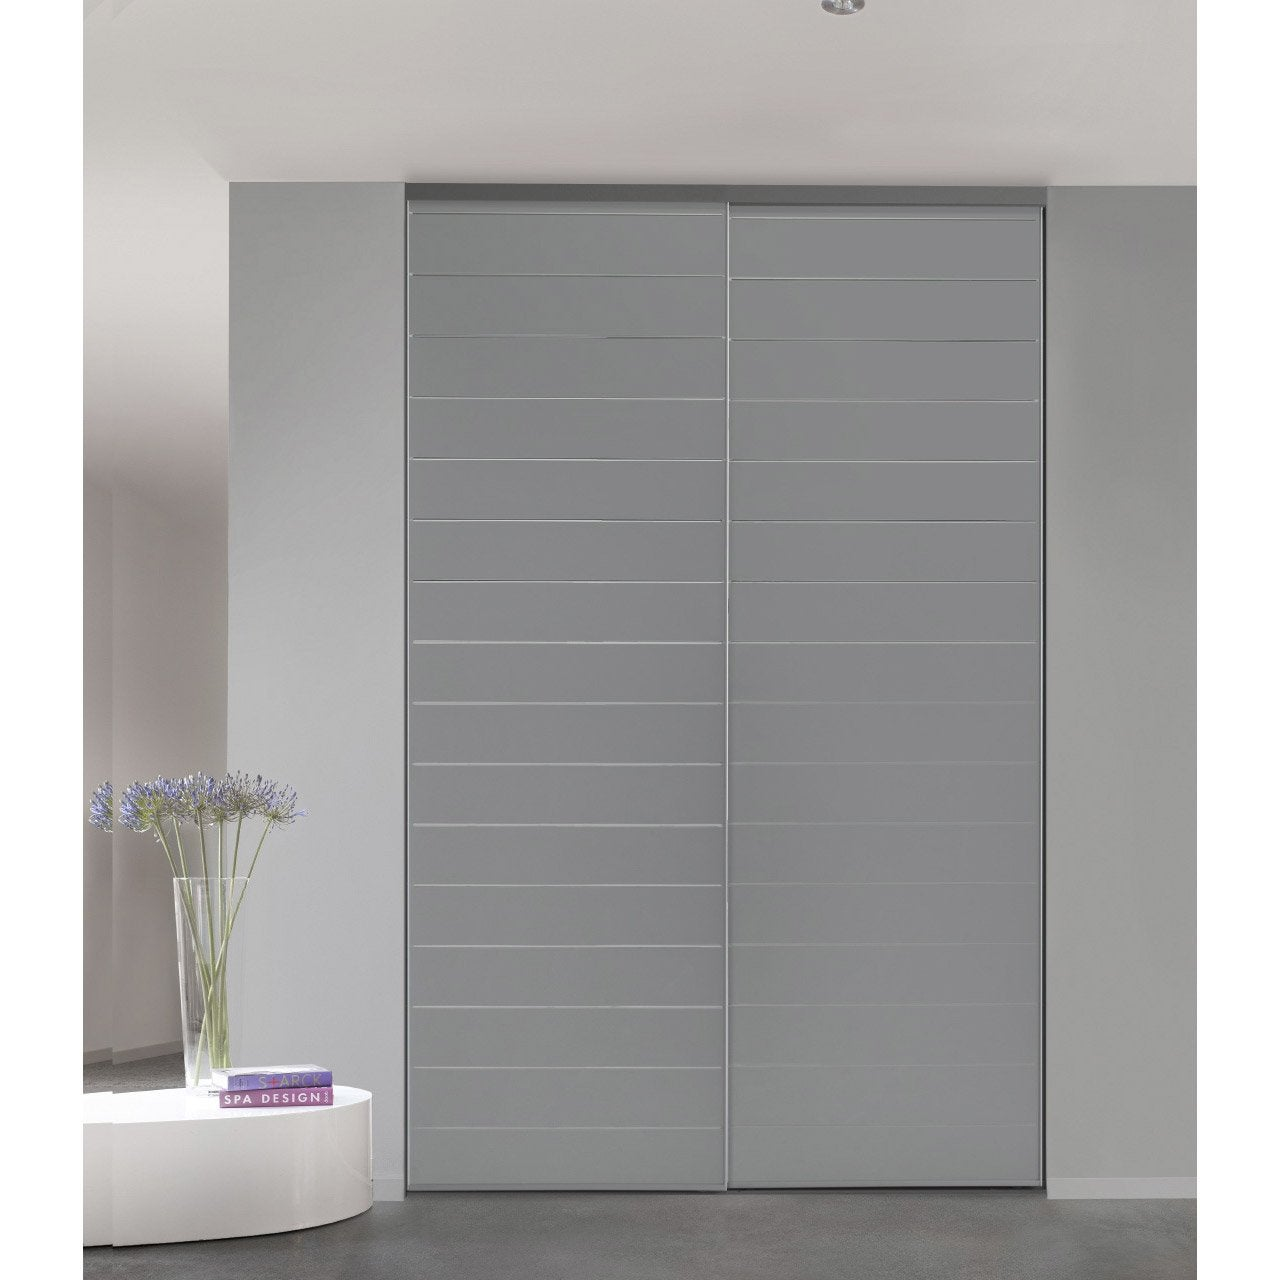 Porte de placard coulissante sur mesure optimum uno de 60 for Porte 60 cm leroy merlin